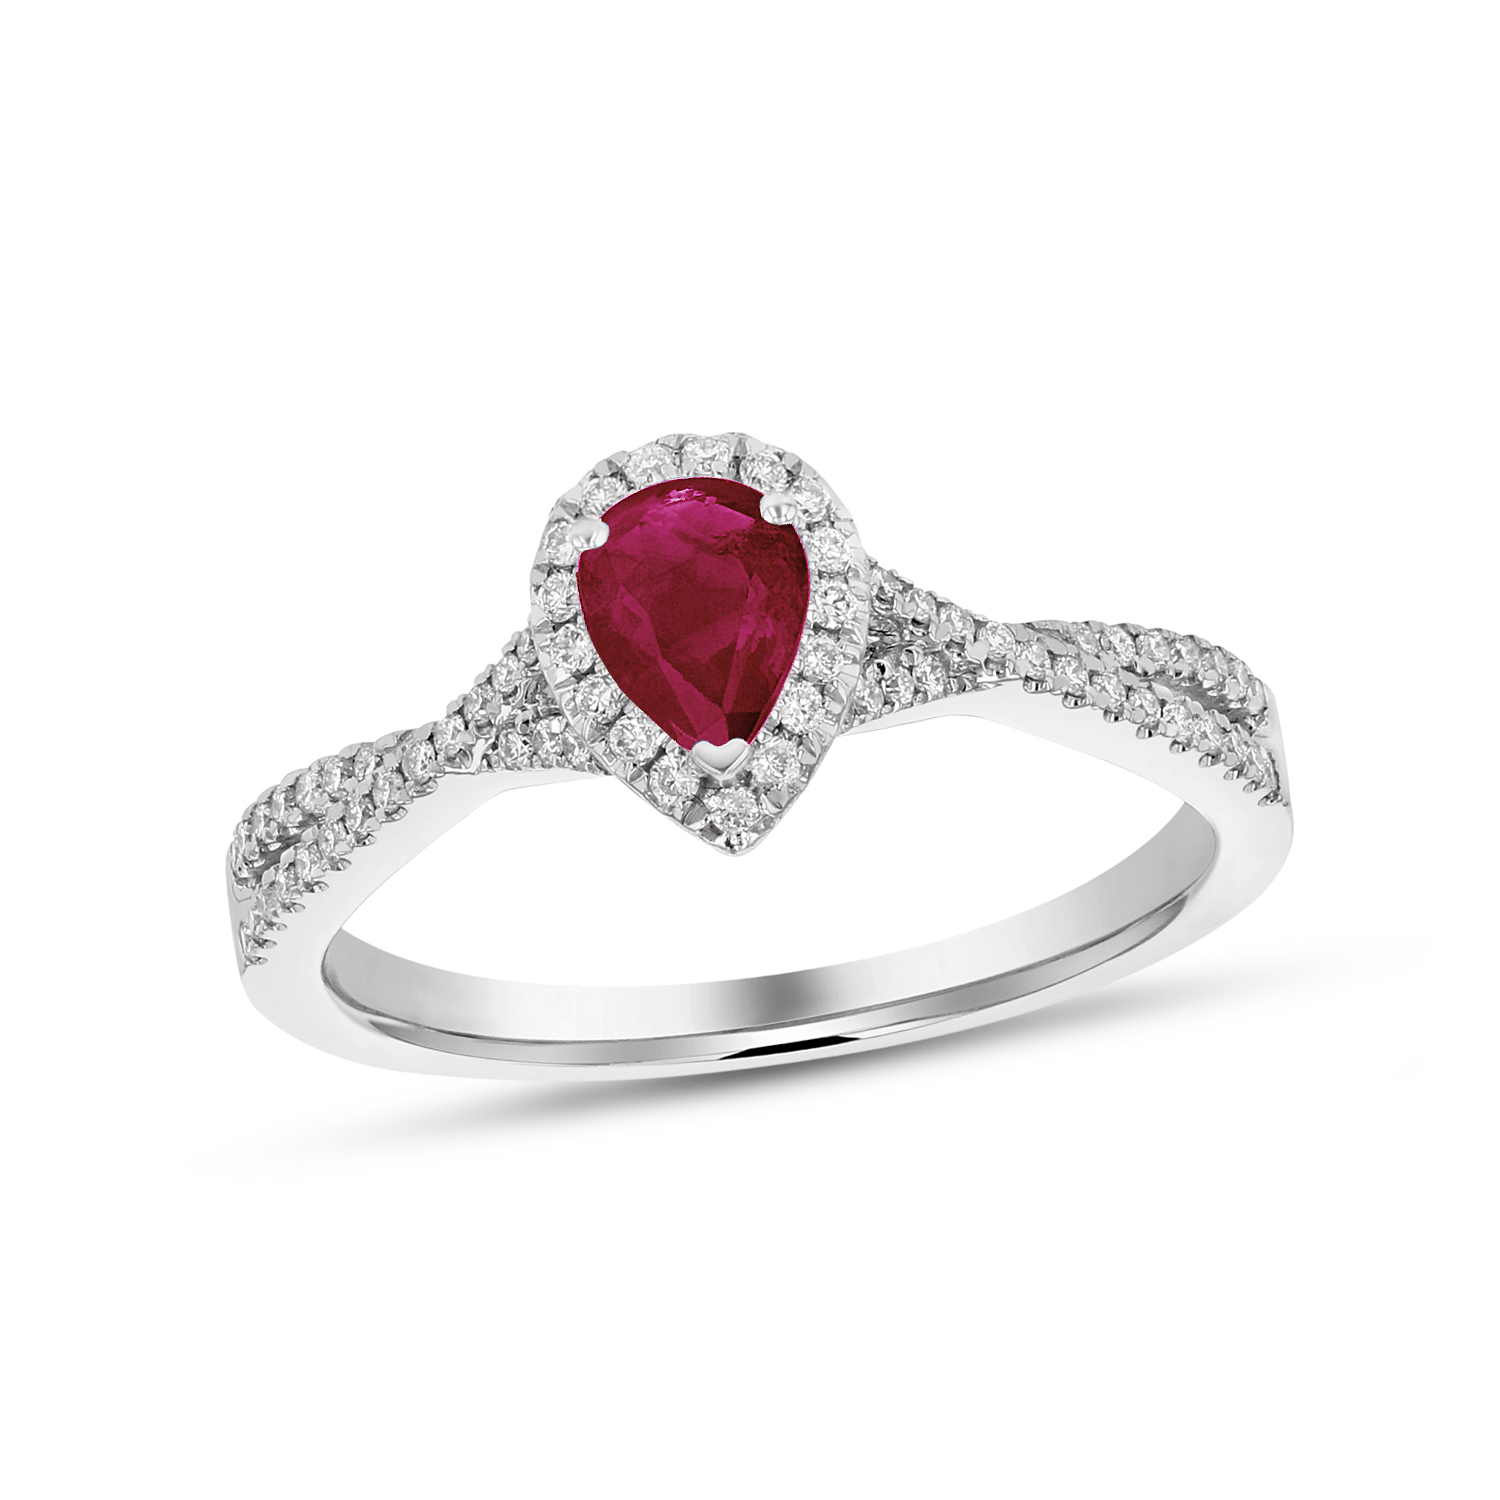 View 0.72ctw Diamnd and Pear Shaped Ruby Ring in 18k White Gold